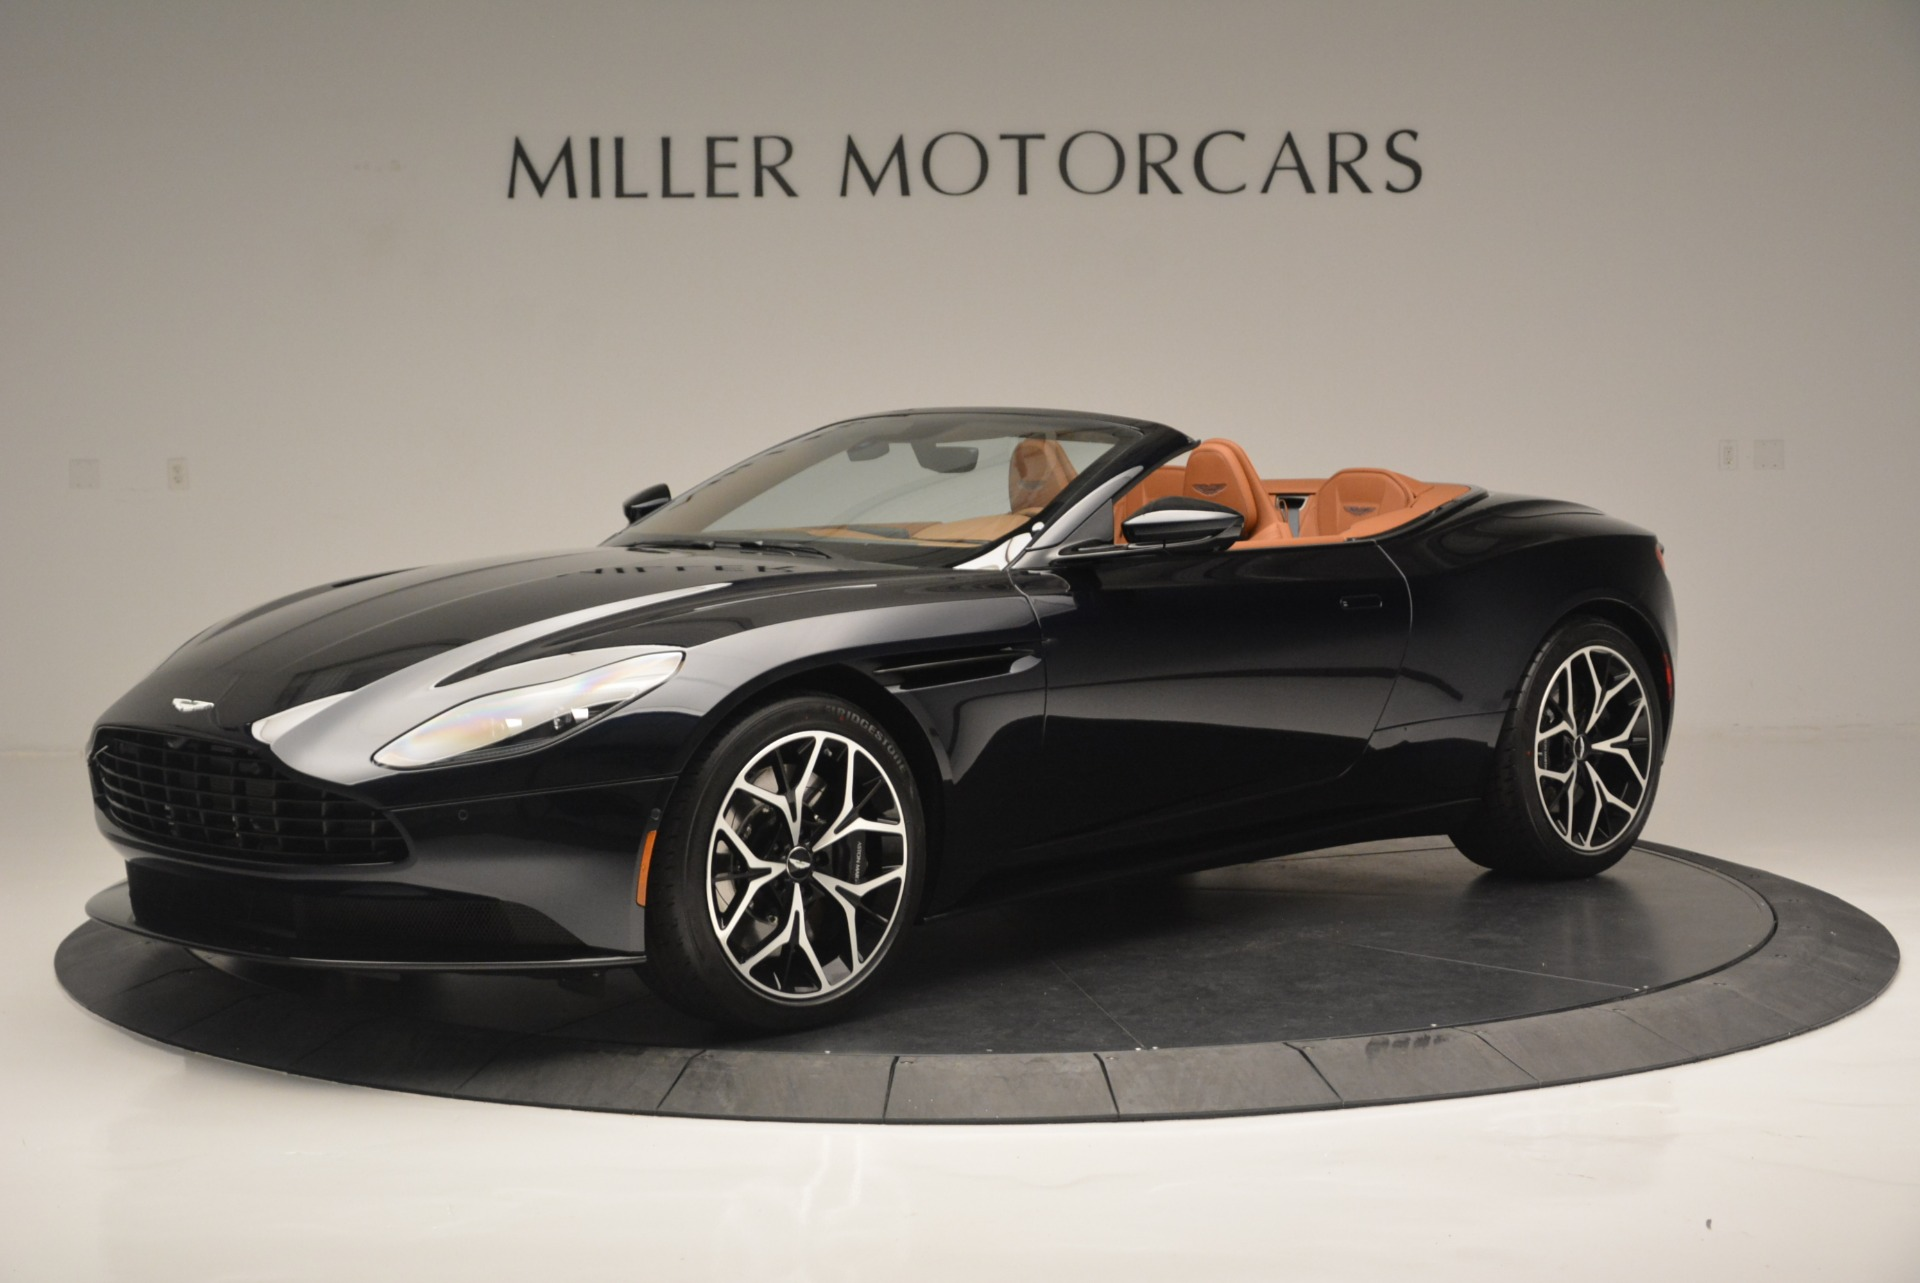 New 2019 Aston Martin DB11 Volante Volante For Sale In Westport, CT 2450_p2